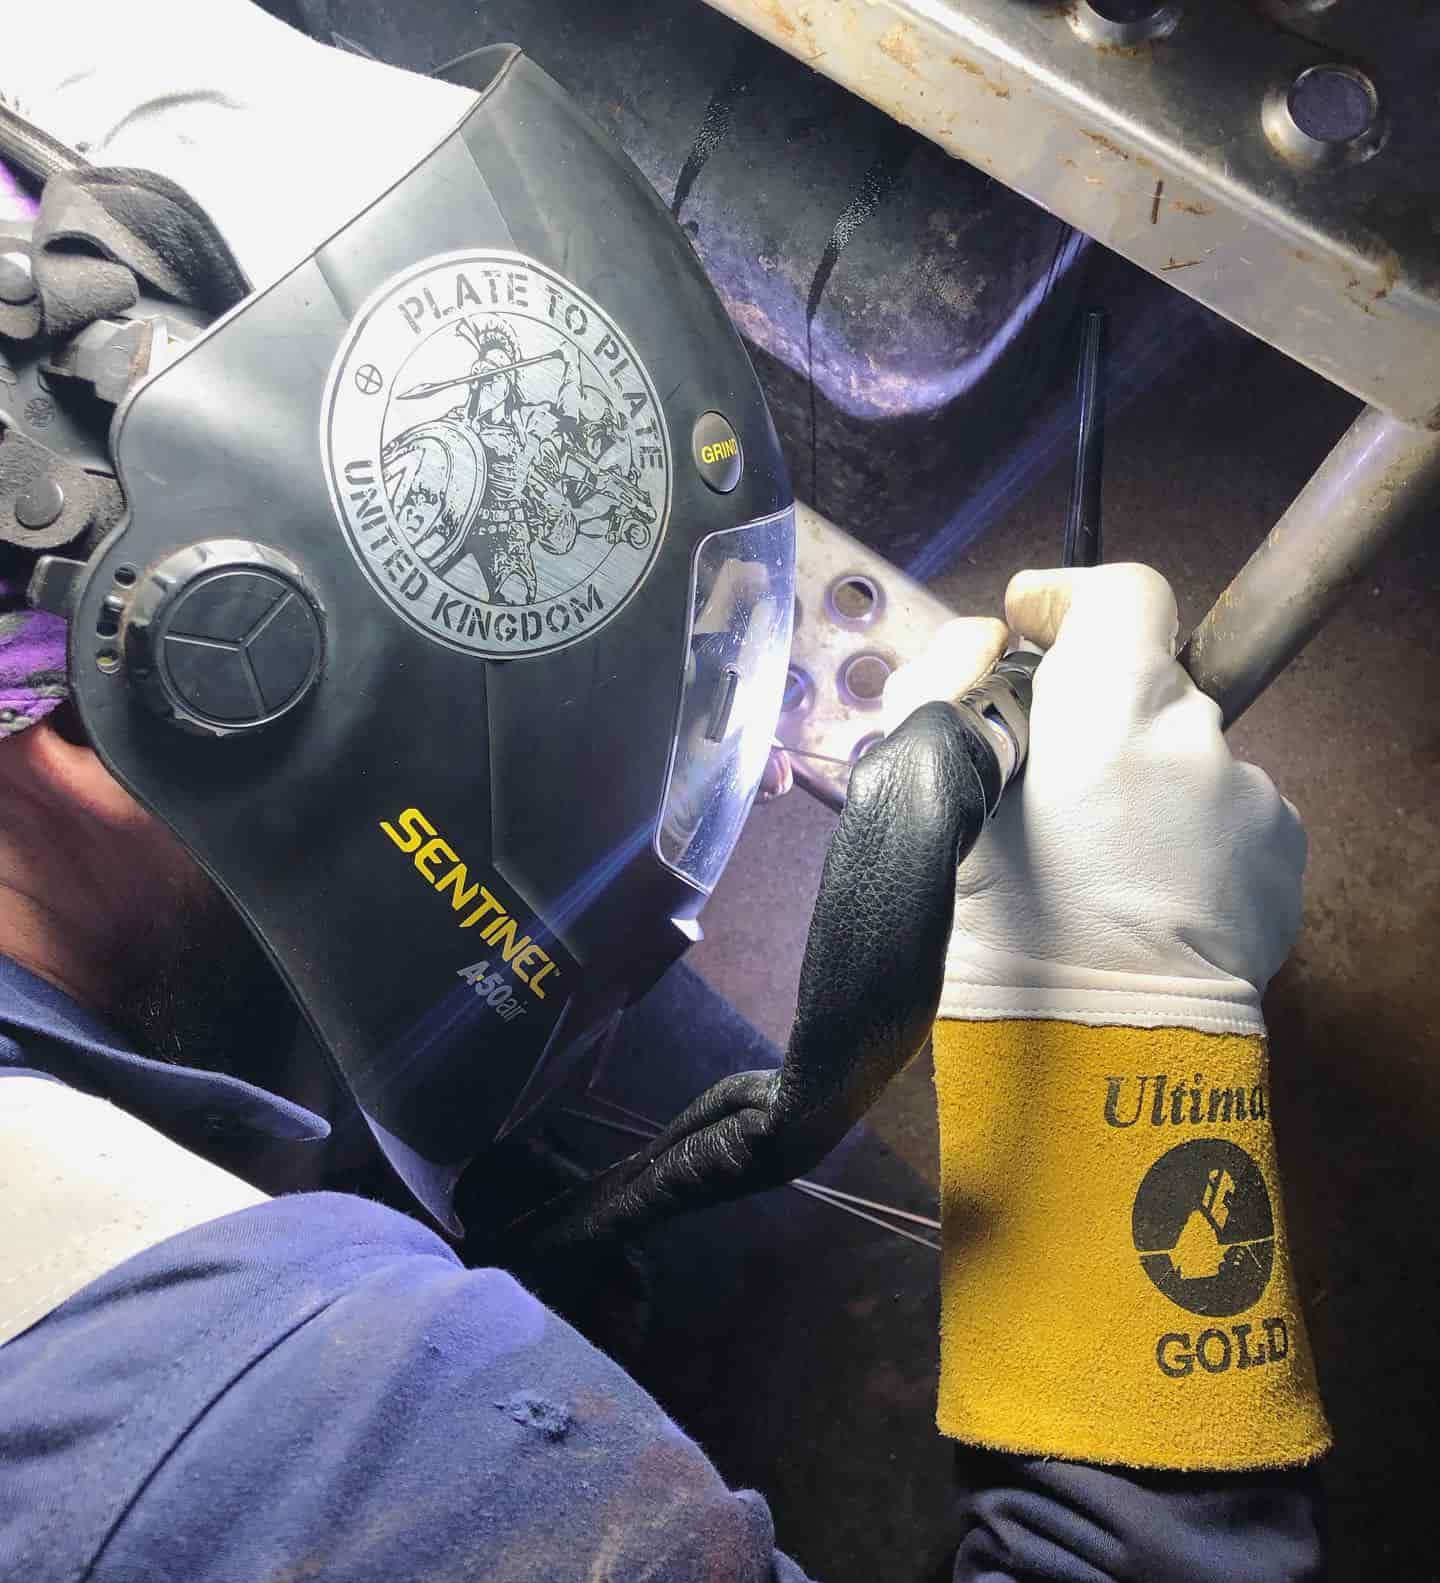 wilson and daughter welding welder in action with sparks and mask